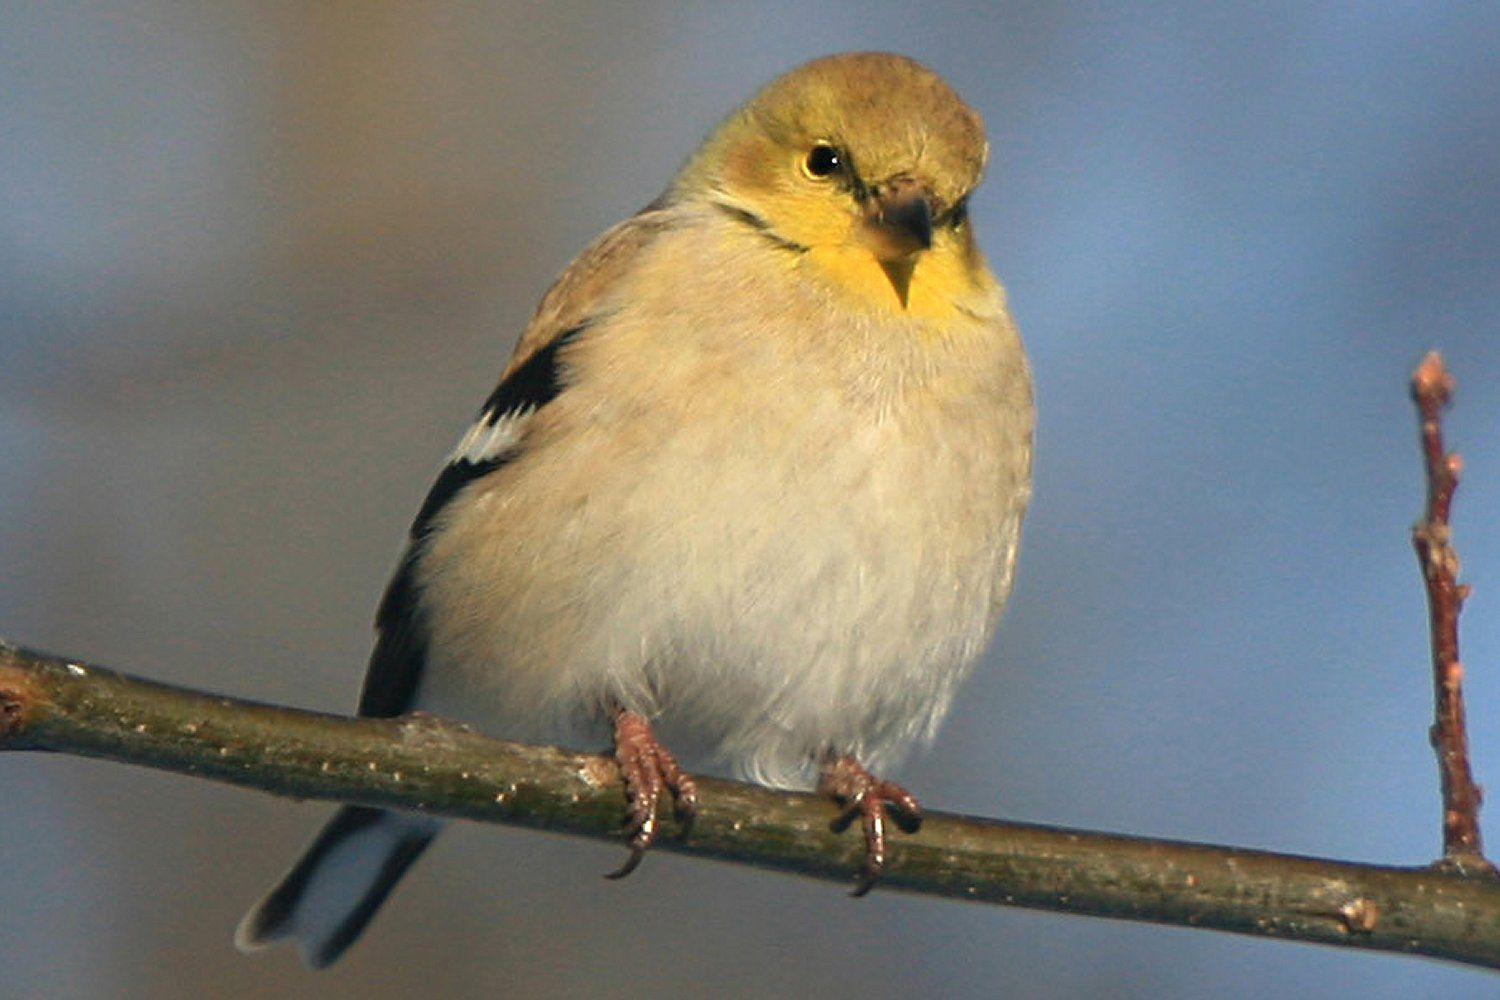 American Goldfinch, the state bird of New Jersey, perched on a branch.